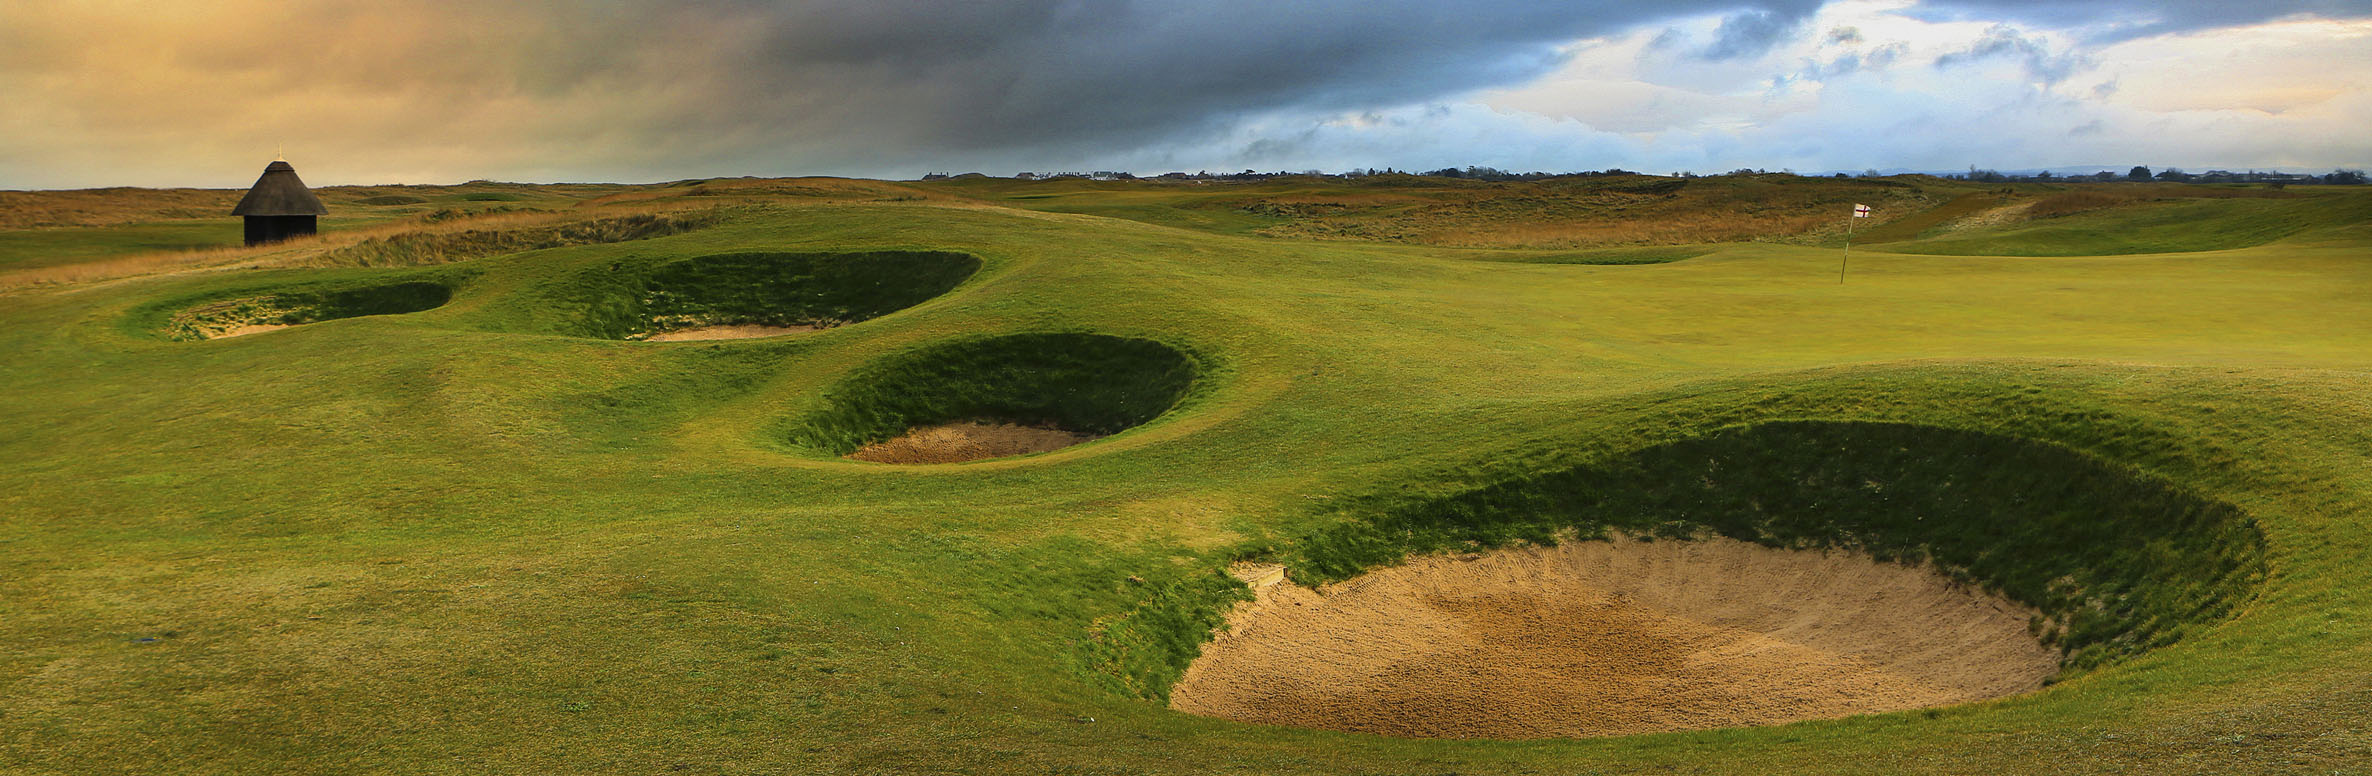 Golf Course Image - Royal St George's Golf Club No. 16